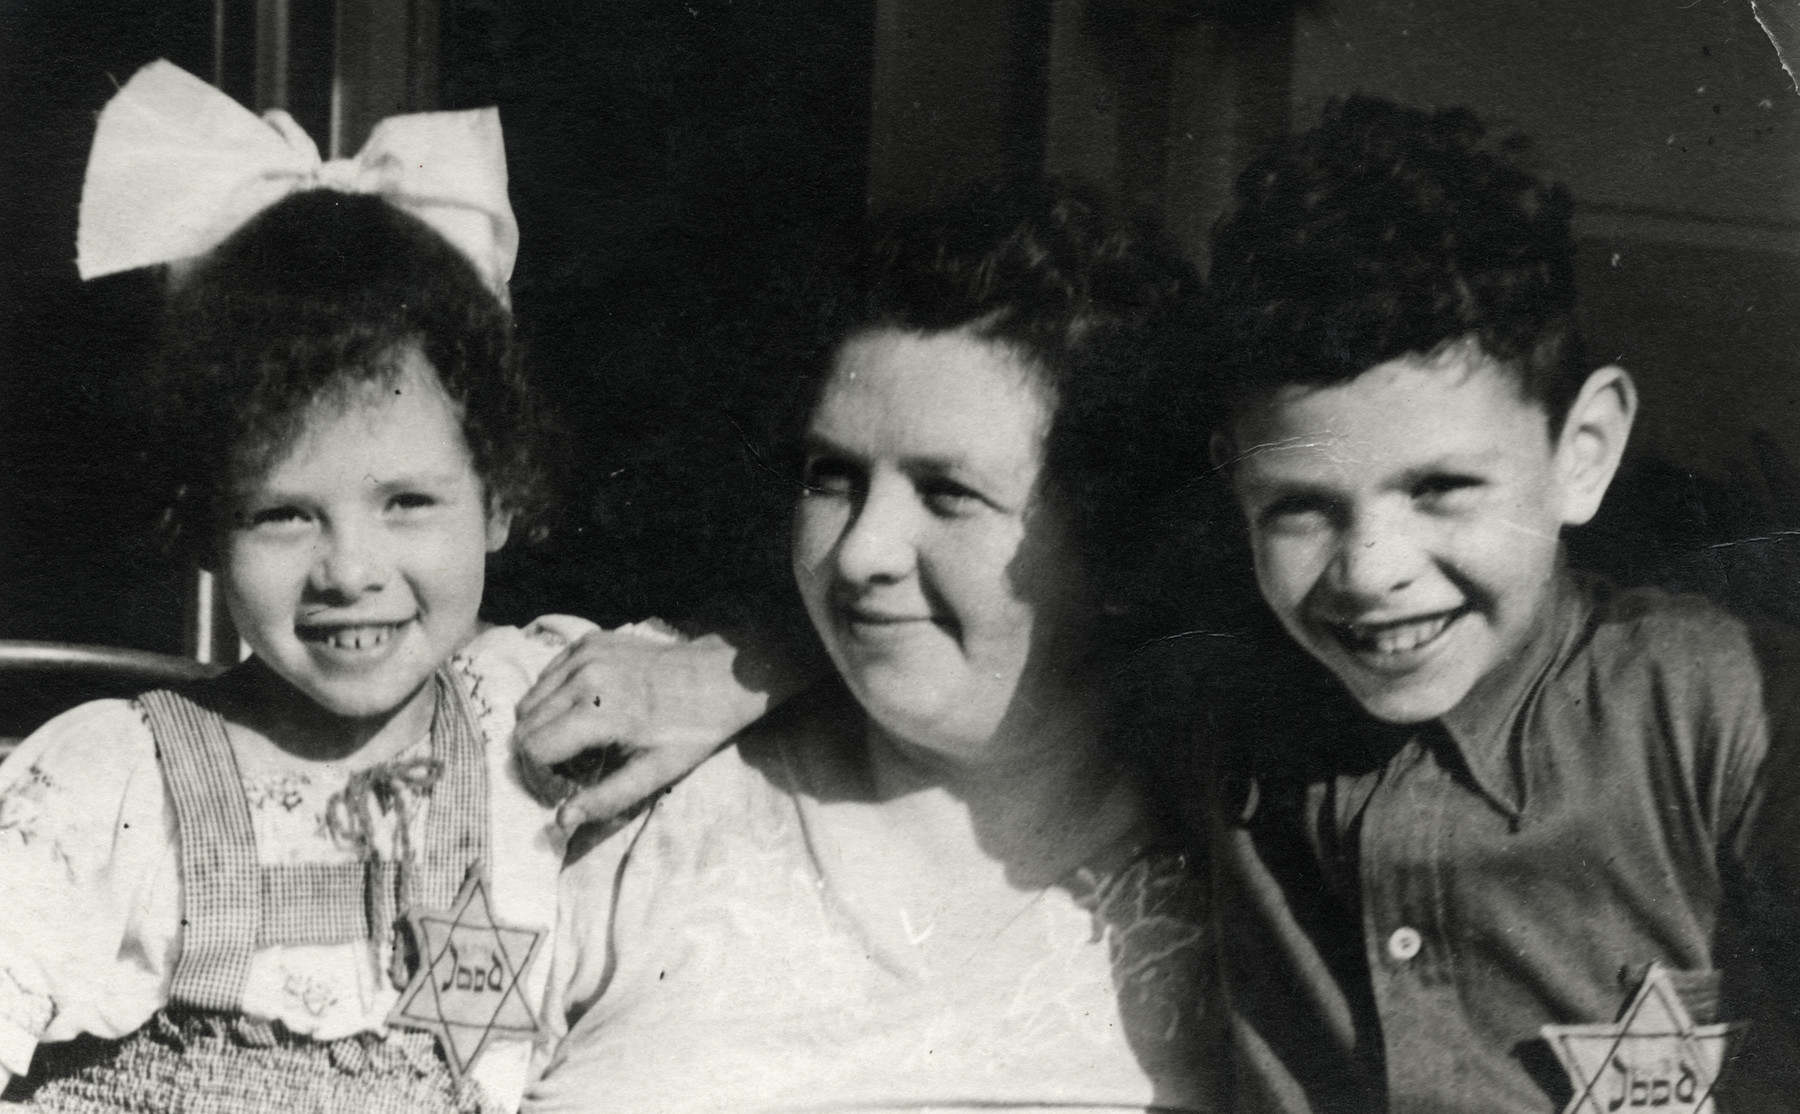 Close up portrait of the Elly, Erna and Alfred Drukker wearing stars of David.